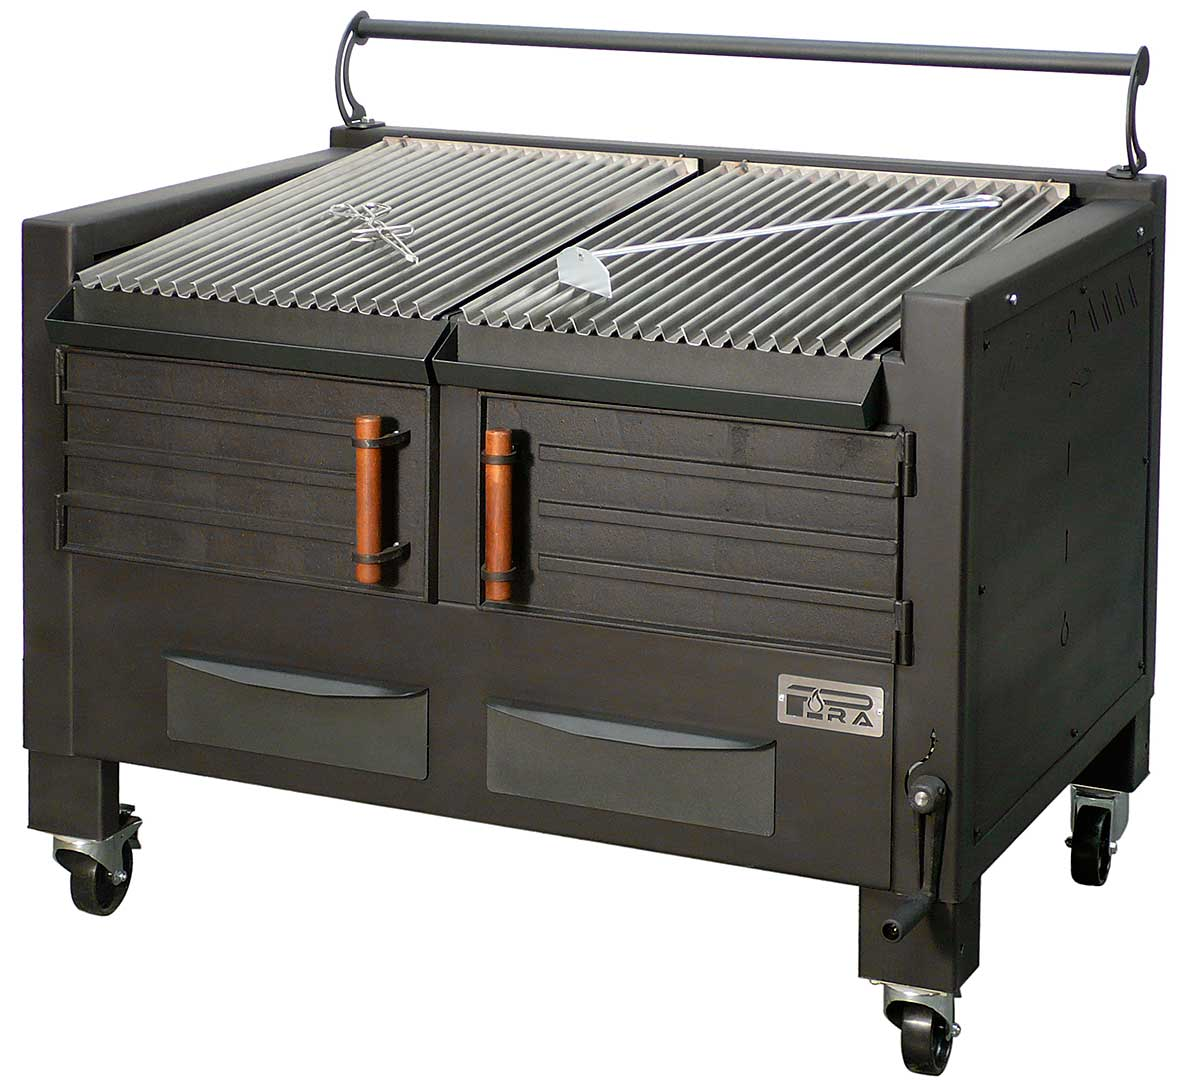 Barbacoa brasa bbq m120 de pira for Barbacoa bbq